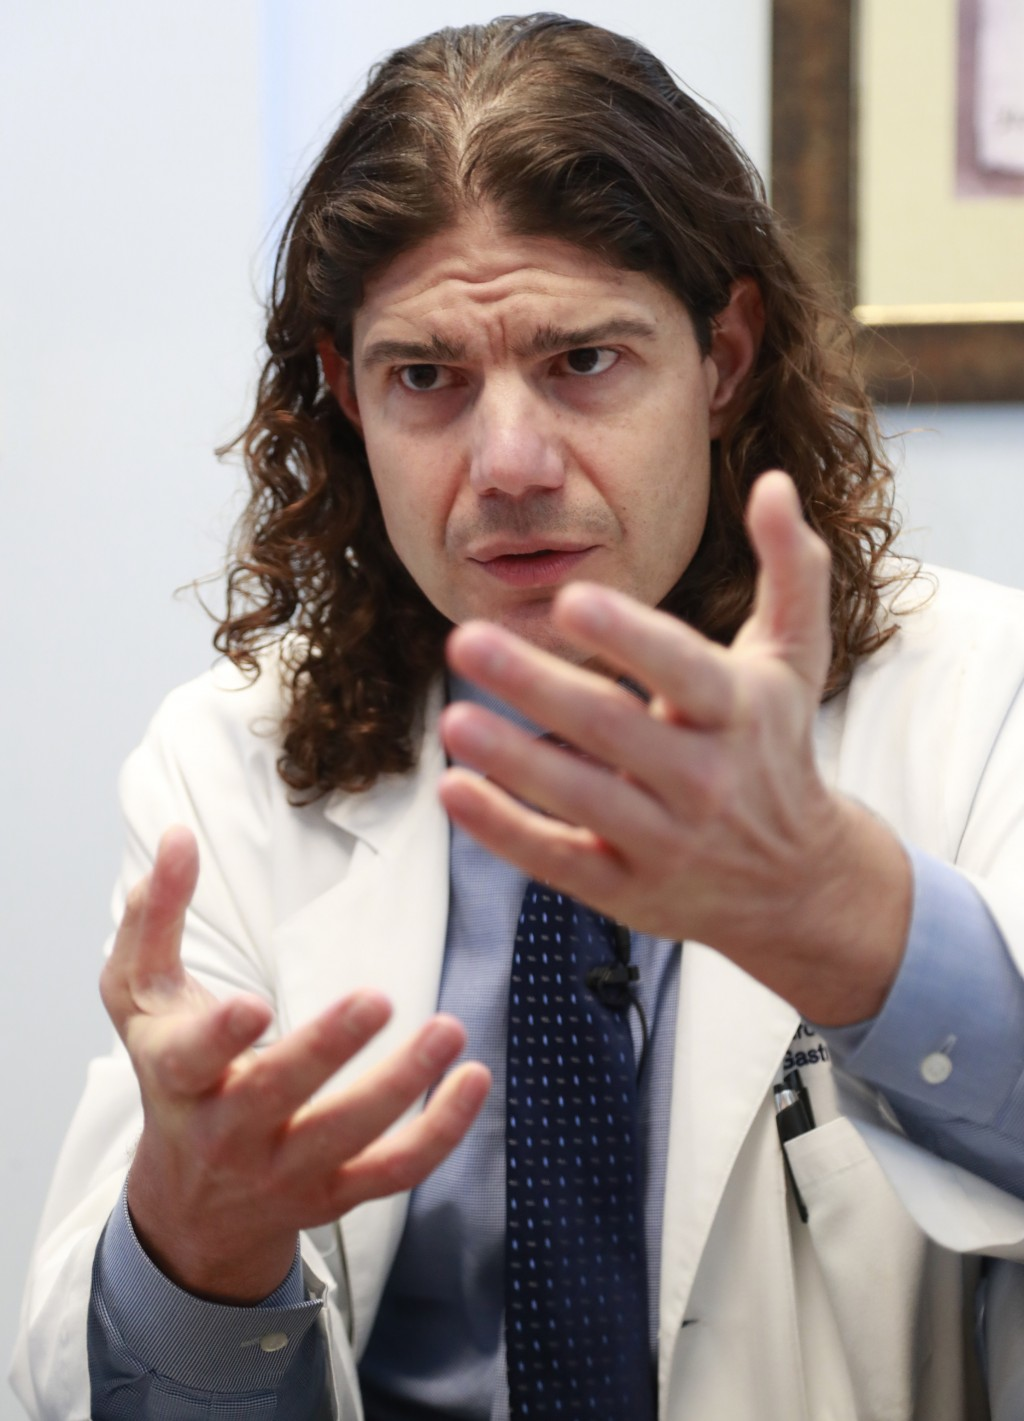 In this Feb. 15, 2019 photo, Venezuelan Pedro Morales, a gastroenterologist who has lived in Miami for over two decades, speaks during an interview in